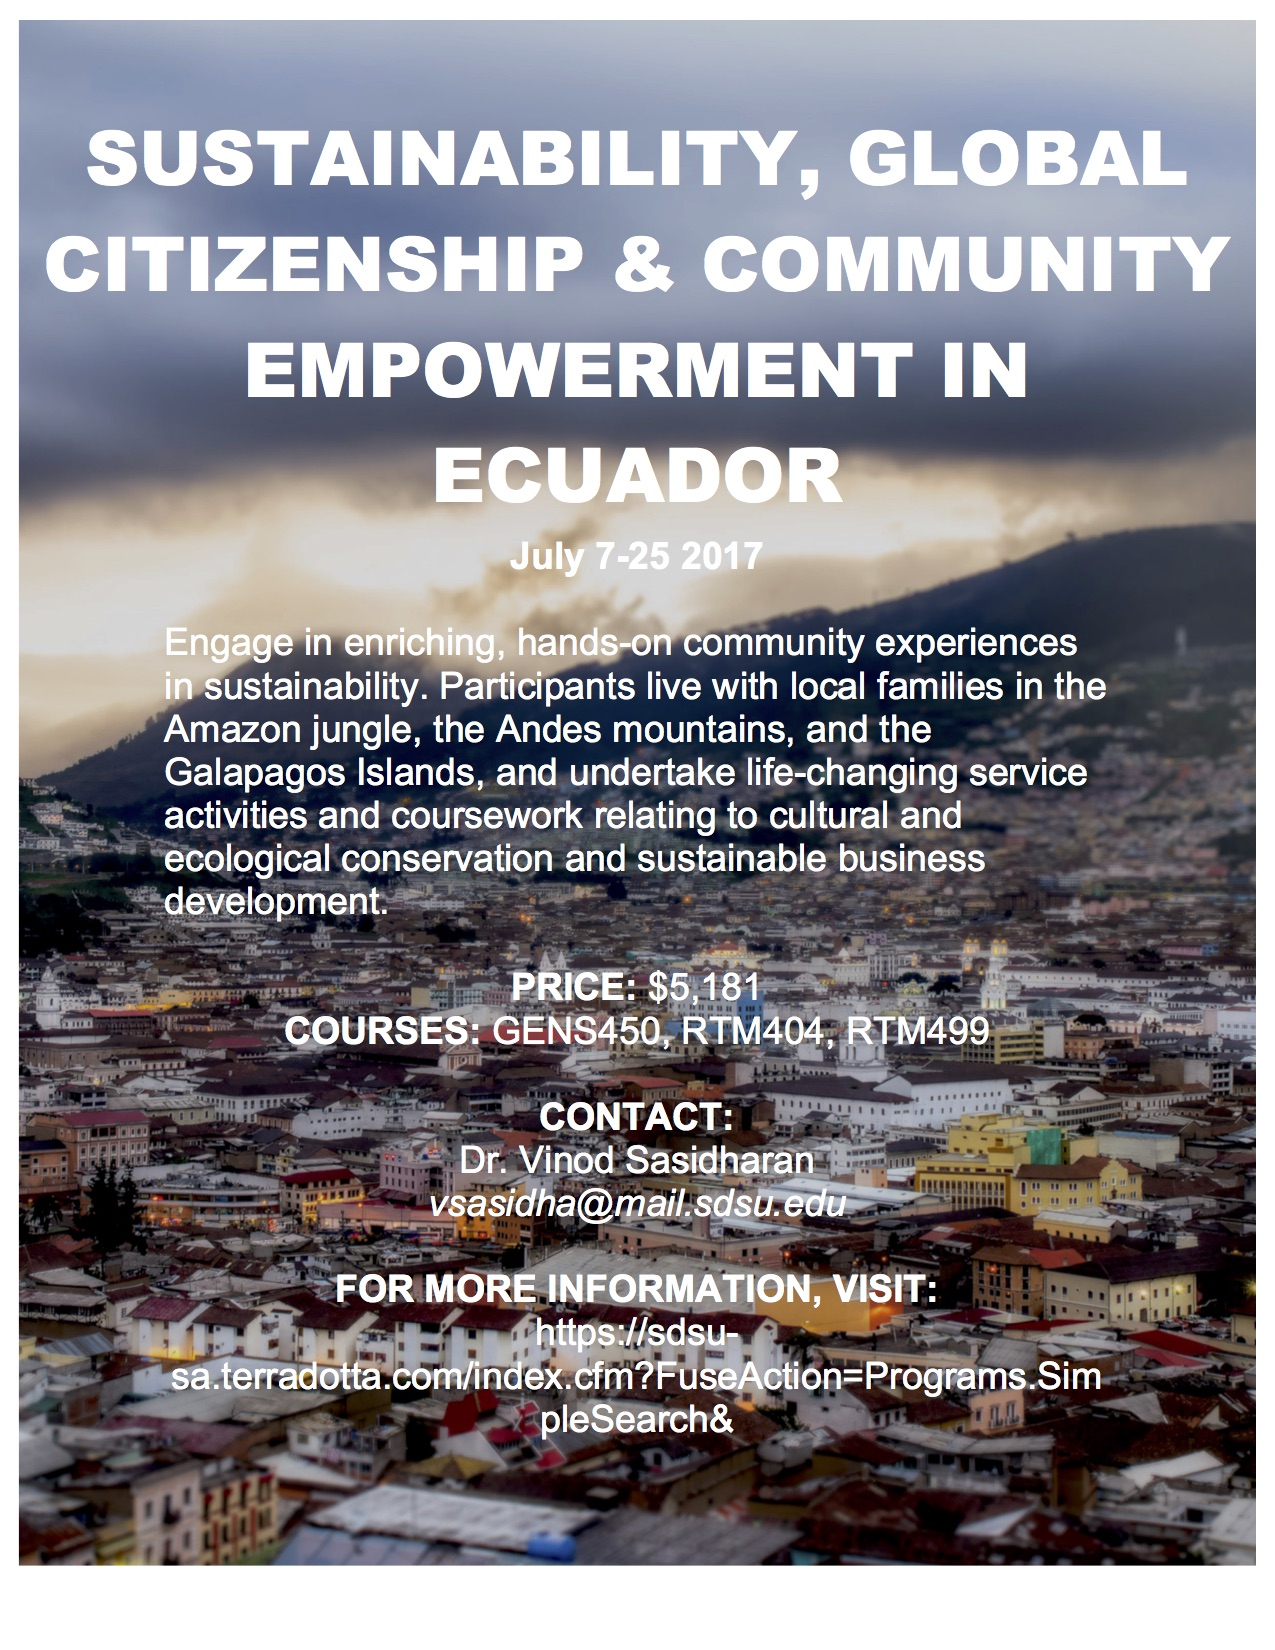 Sustainability, Global Citizenship, and Community Empowerment in Ecuador